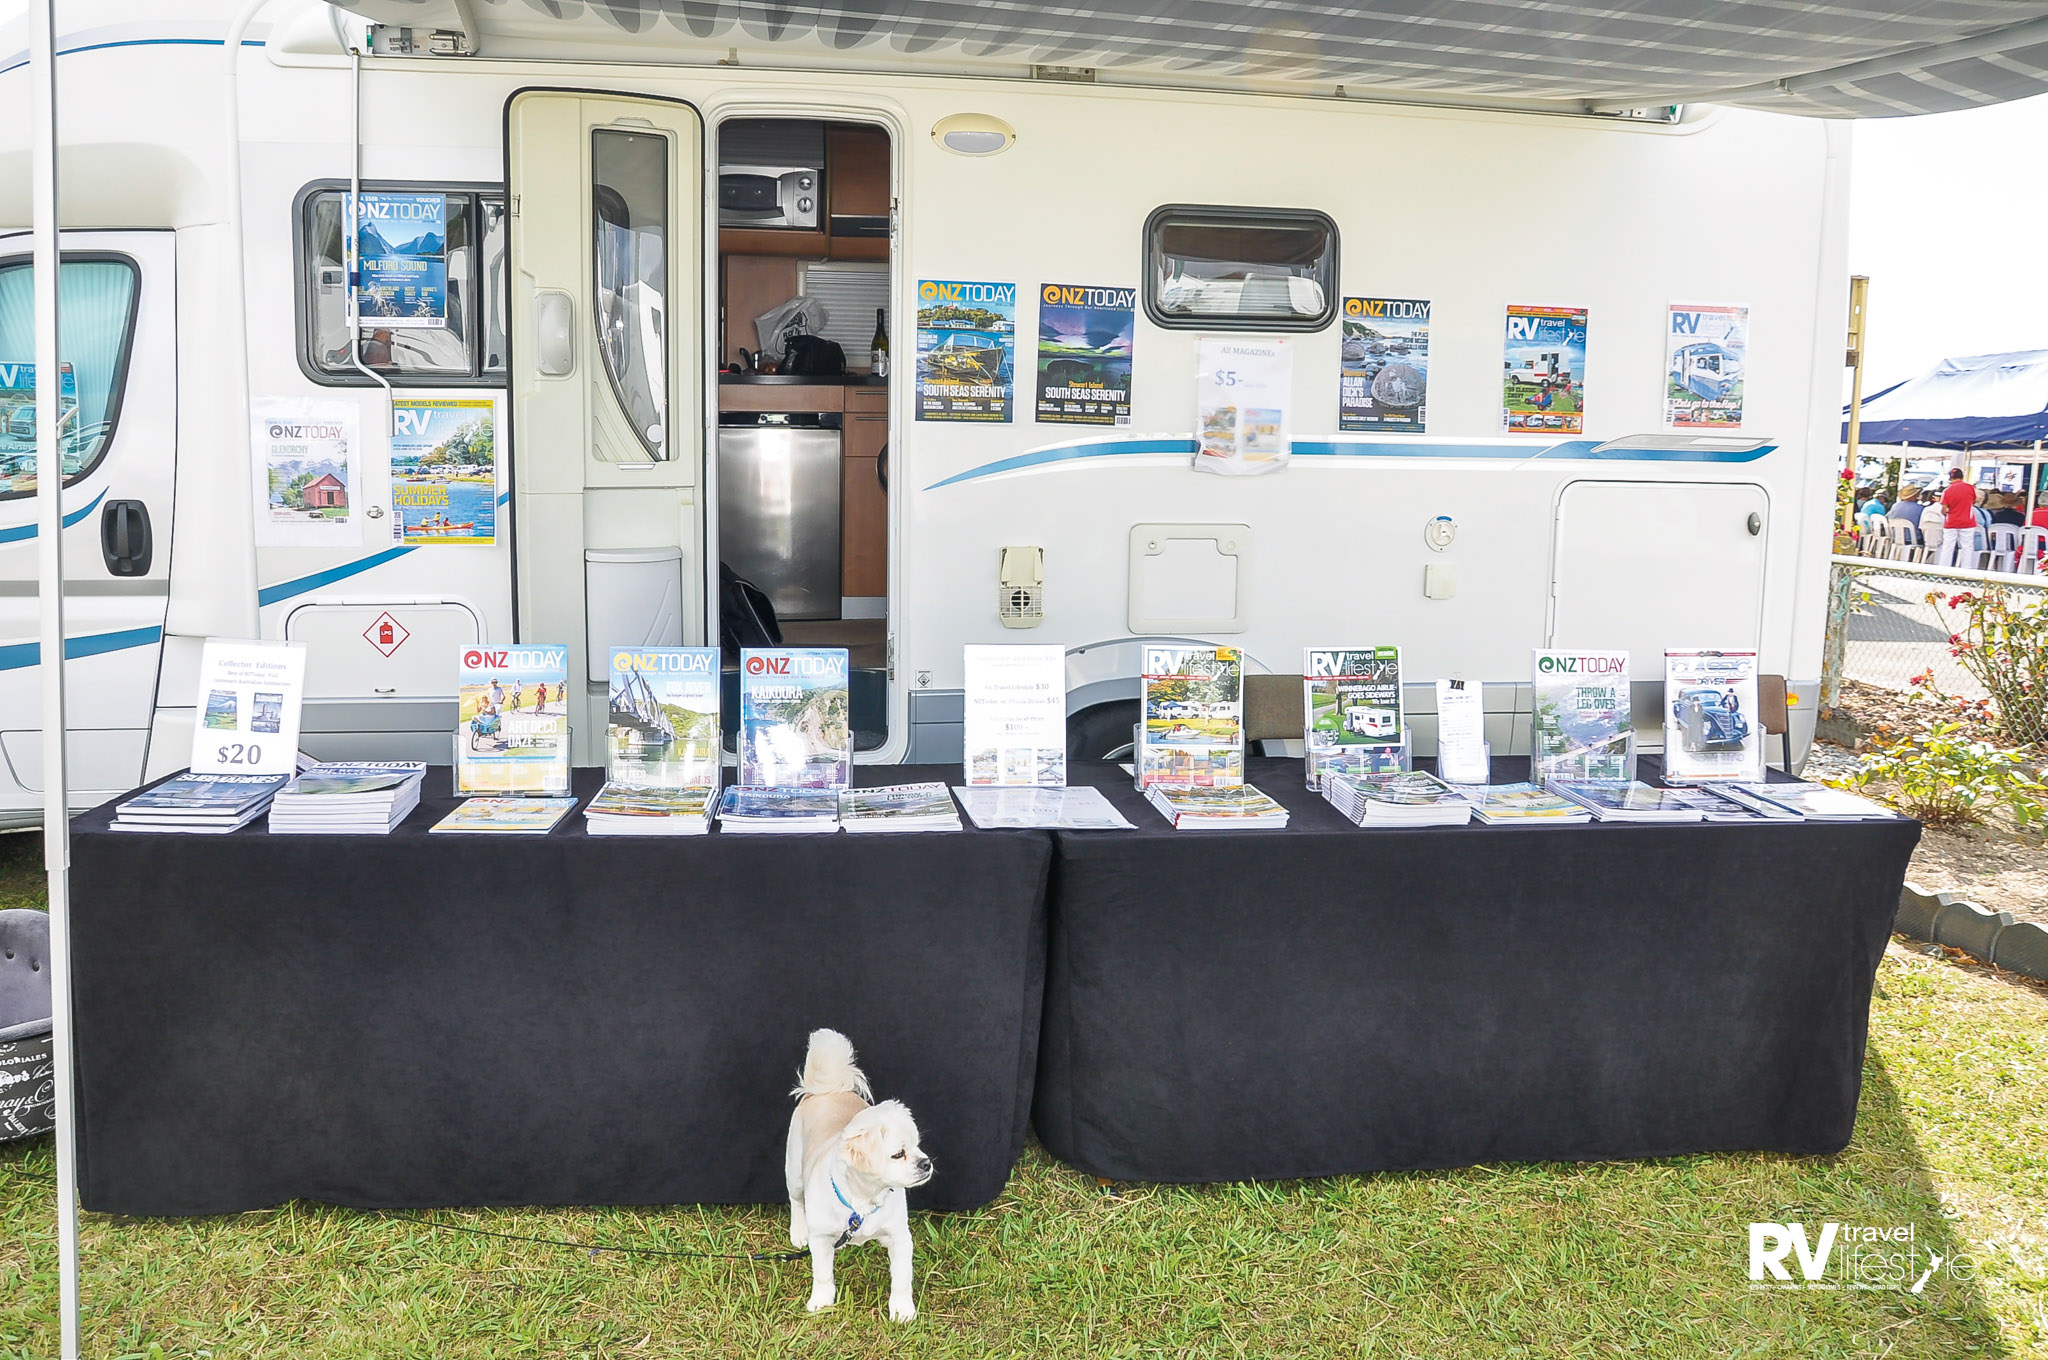 I got lots of attention at the big motorhome place